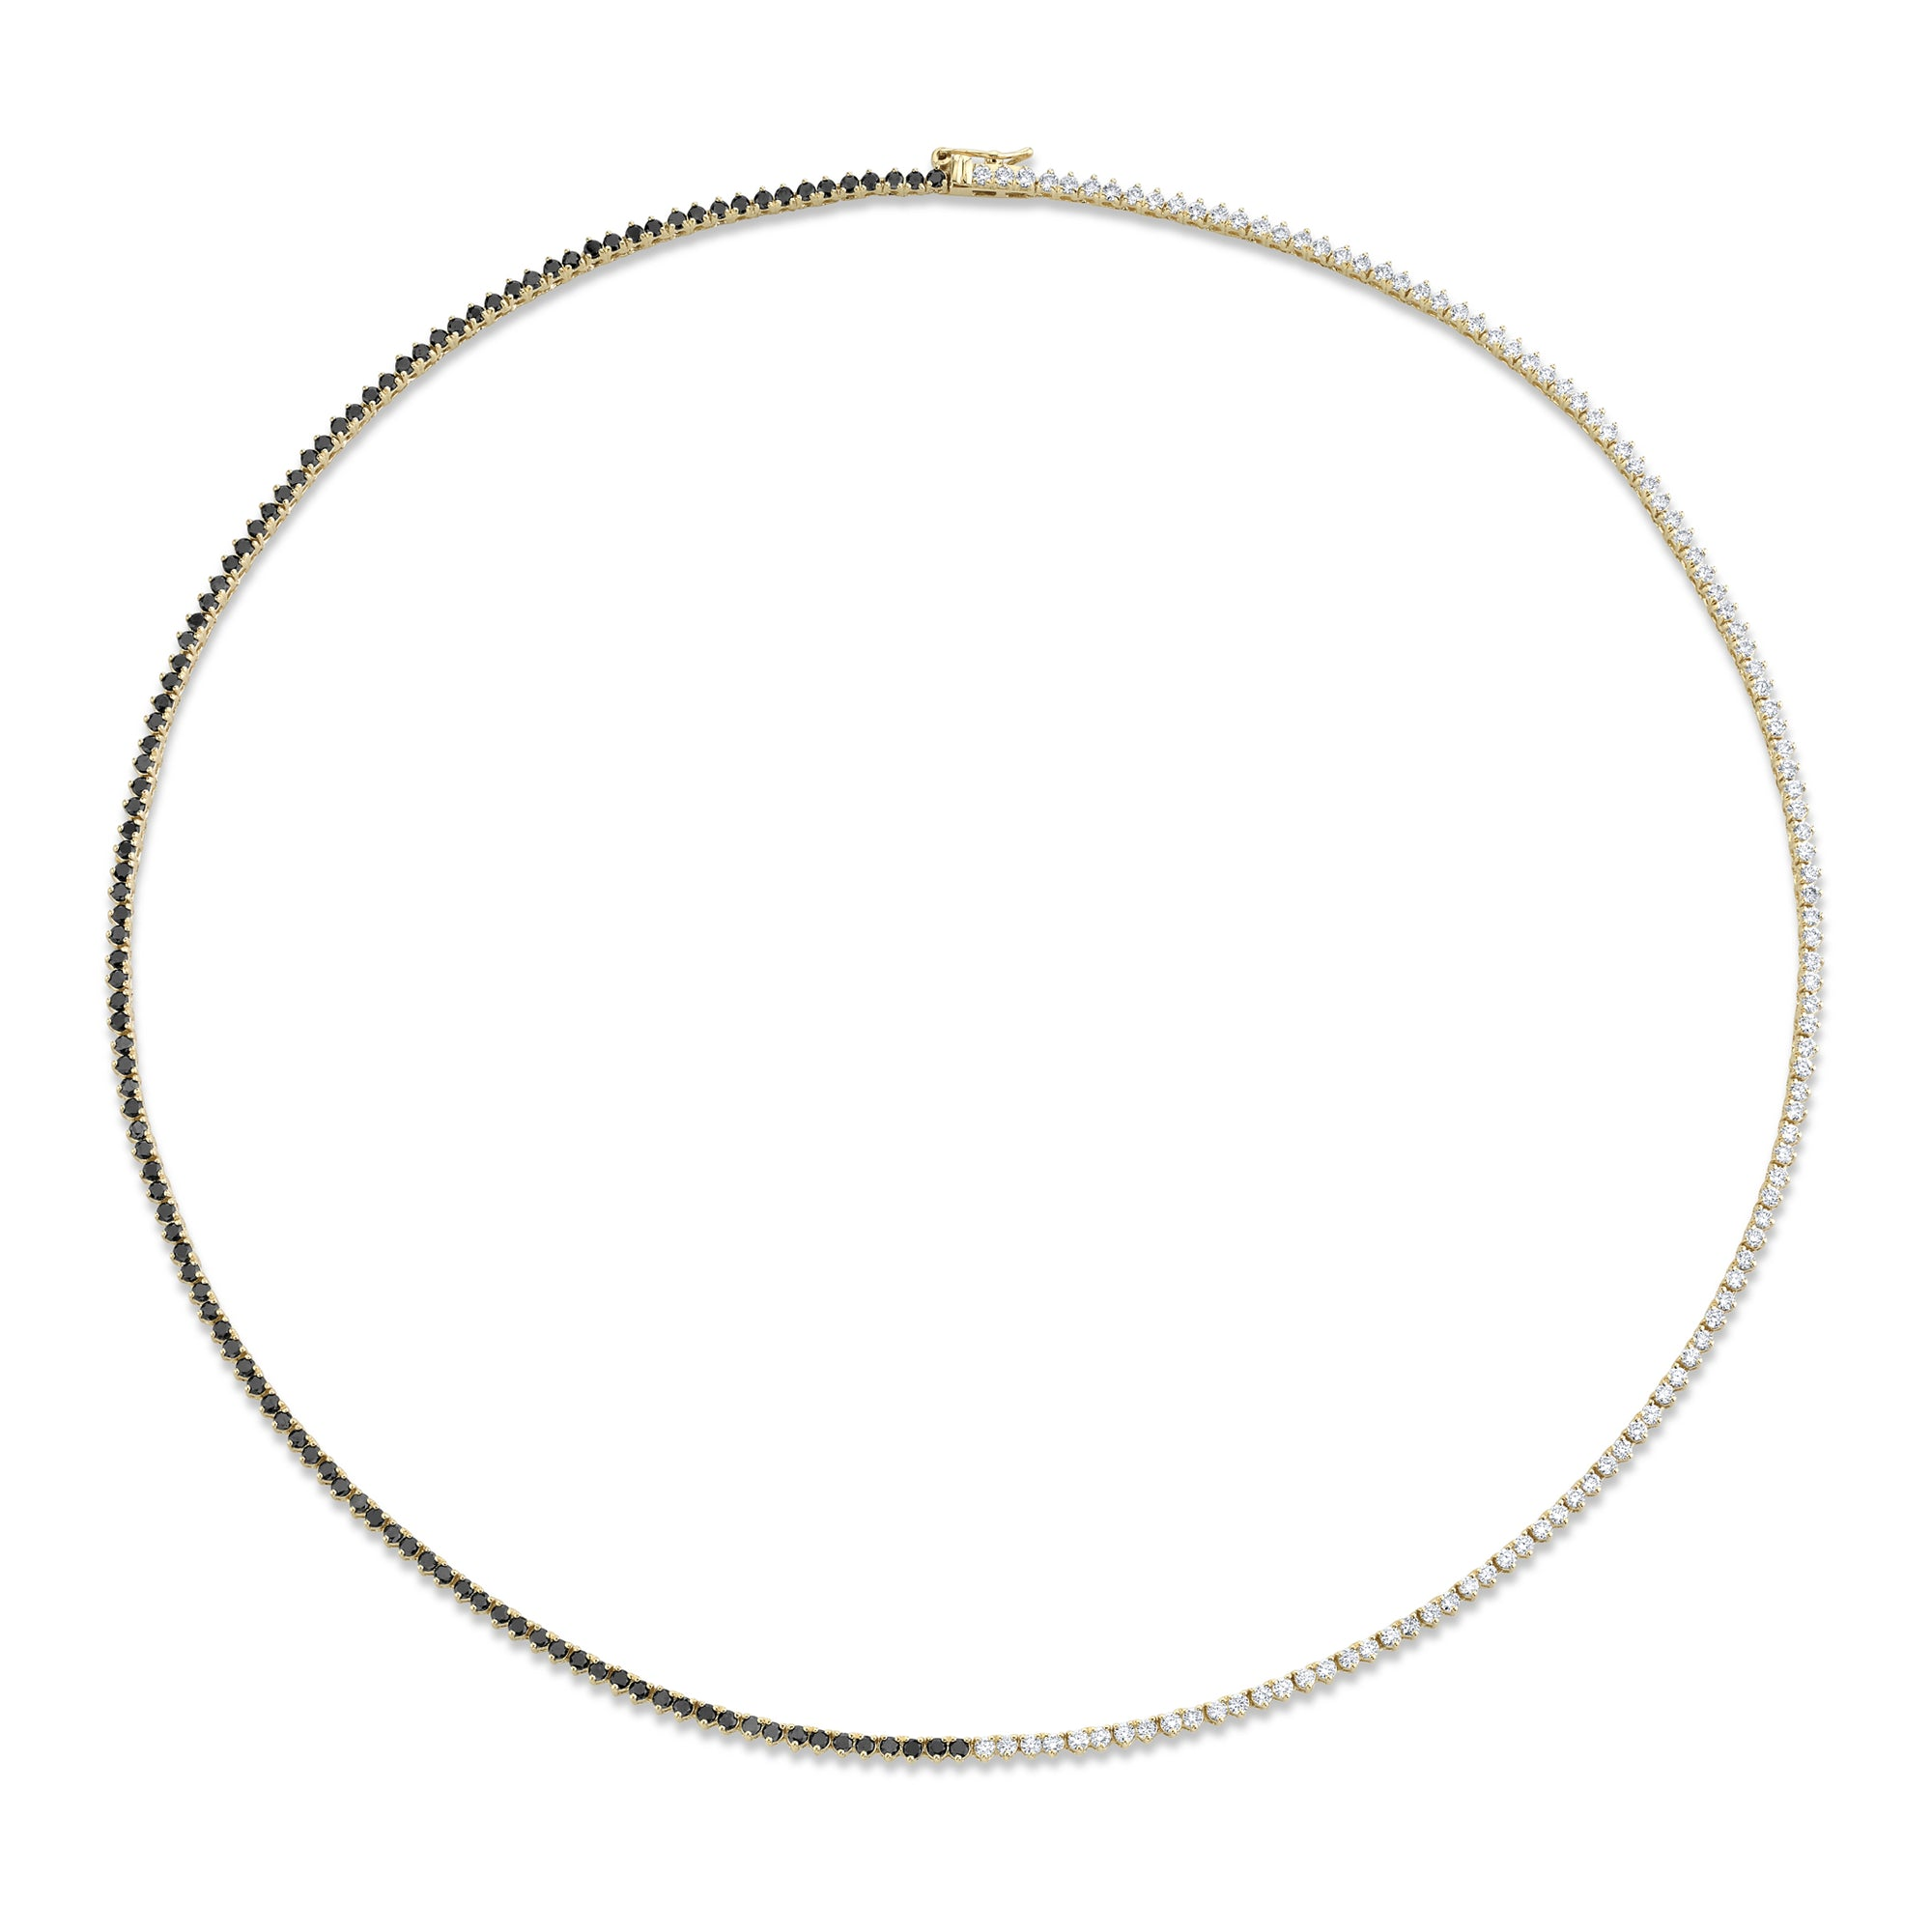 Othello Tennis Necklace